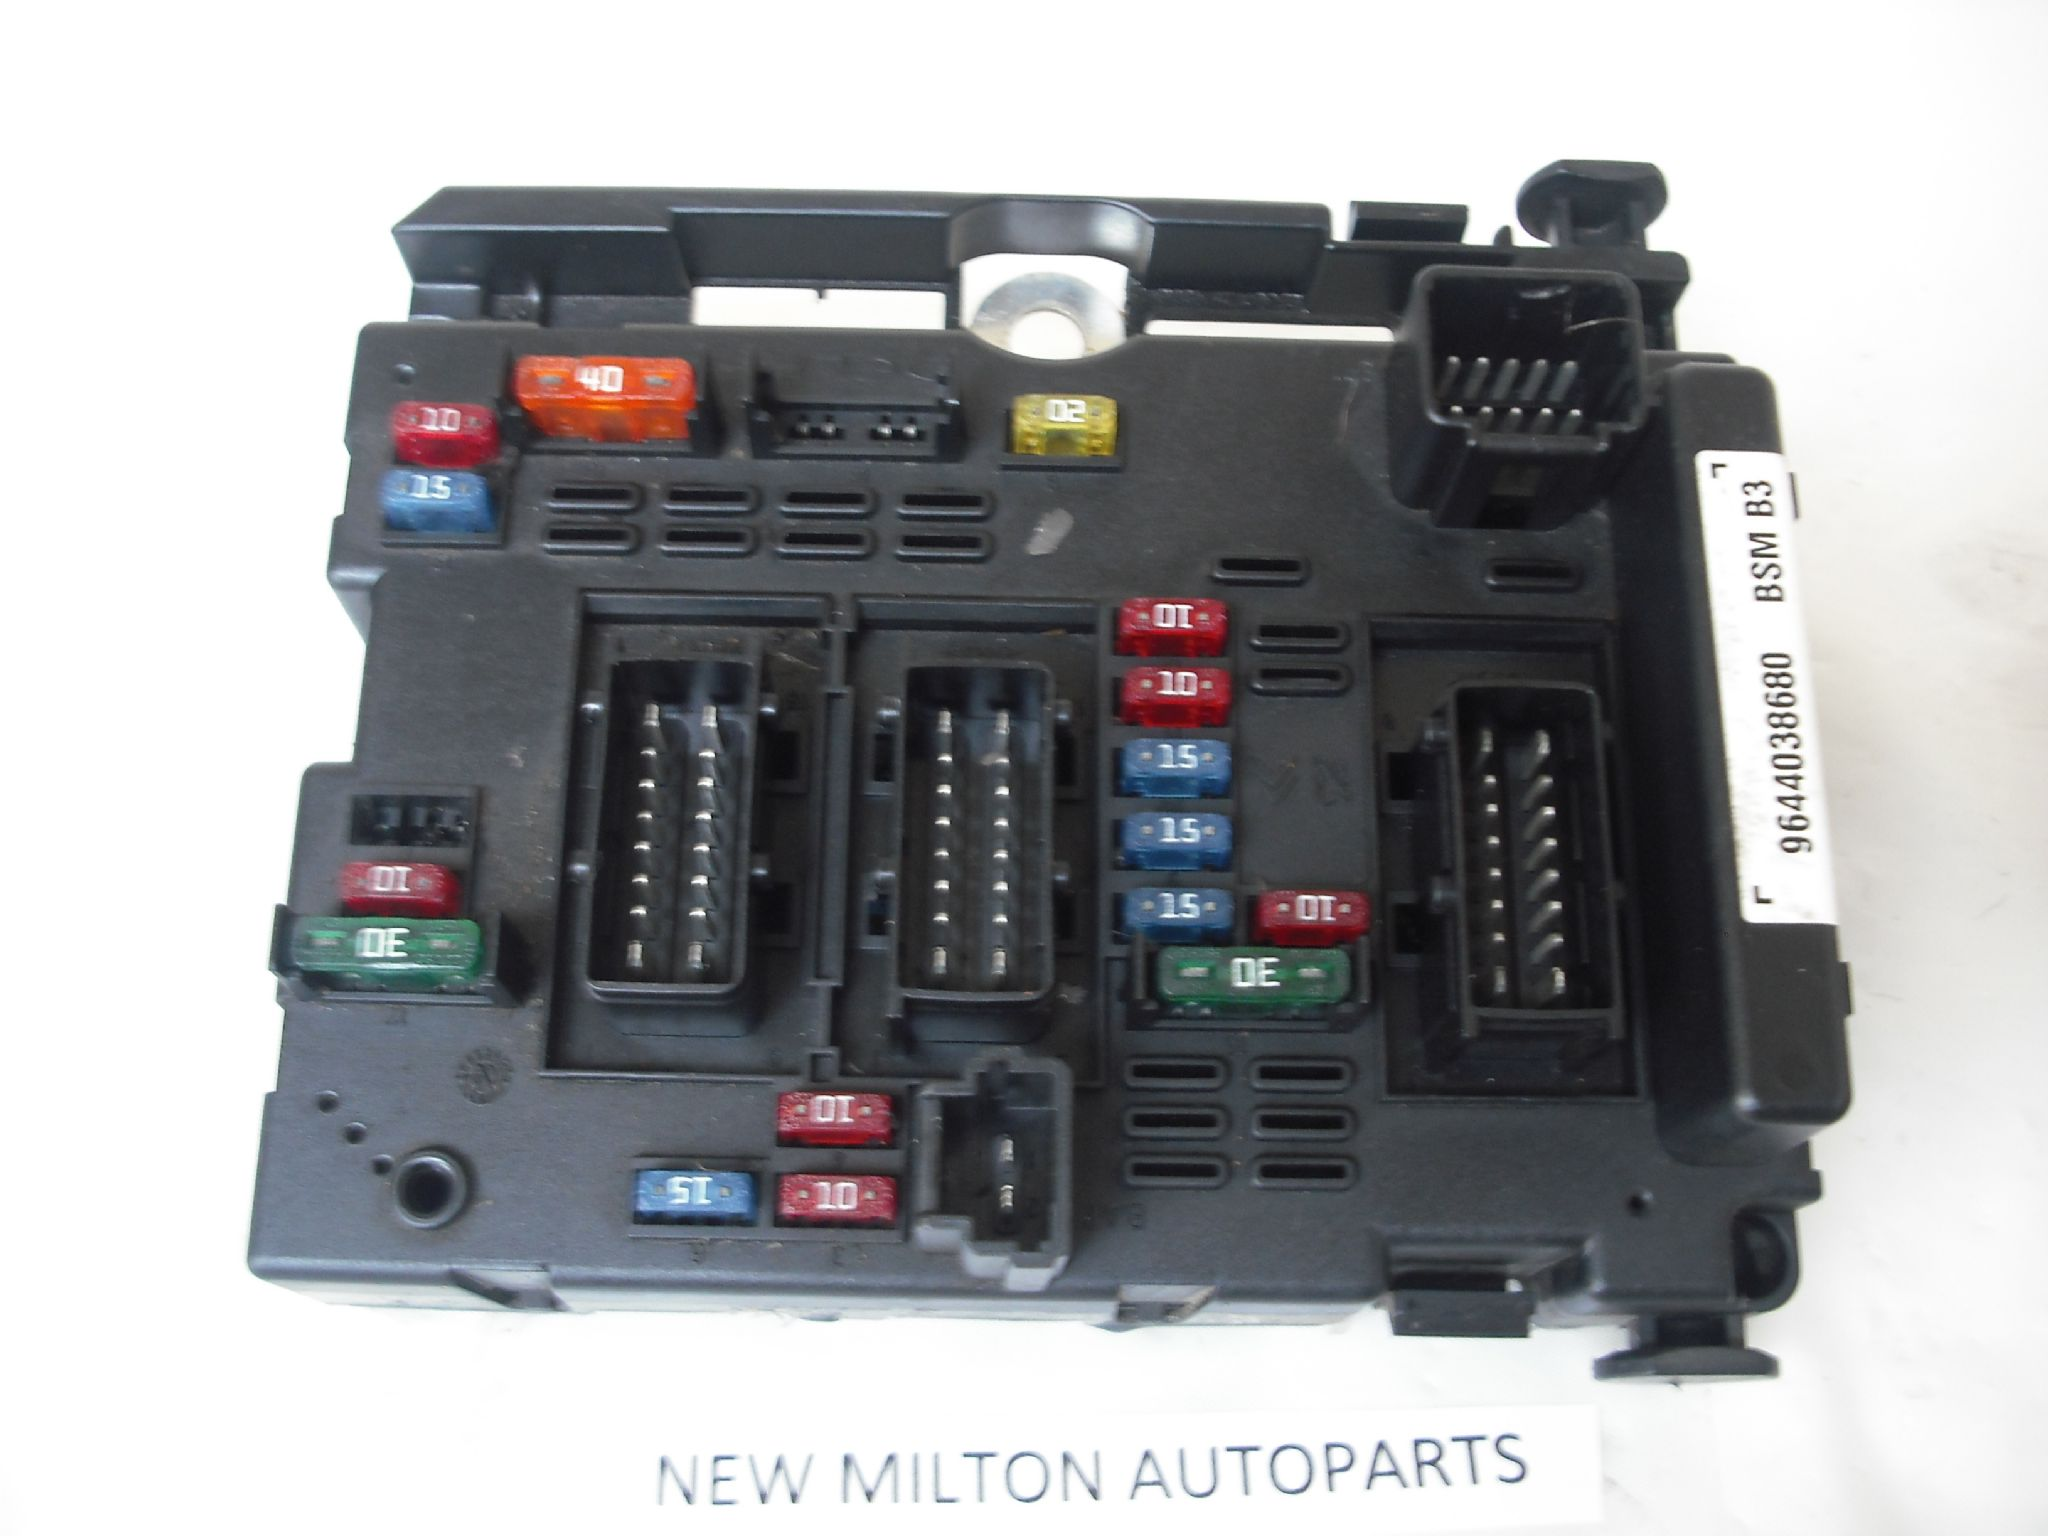 peugeot 307 partner citroen berlingo fuse box controller 9644038680 bsm b3 ........................sorry out of stock 5843 p peugeot 307 partner citroen berlingo fuse box controller citroen berlingo 2003 fuse box at couponss.co